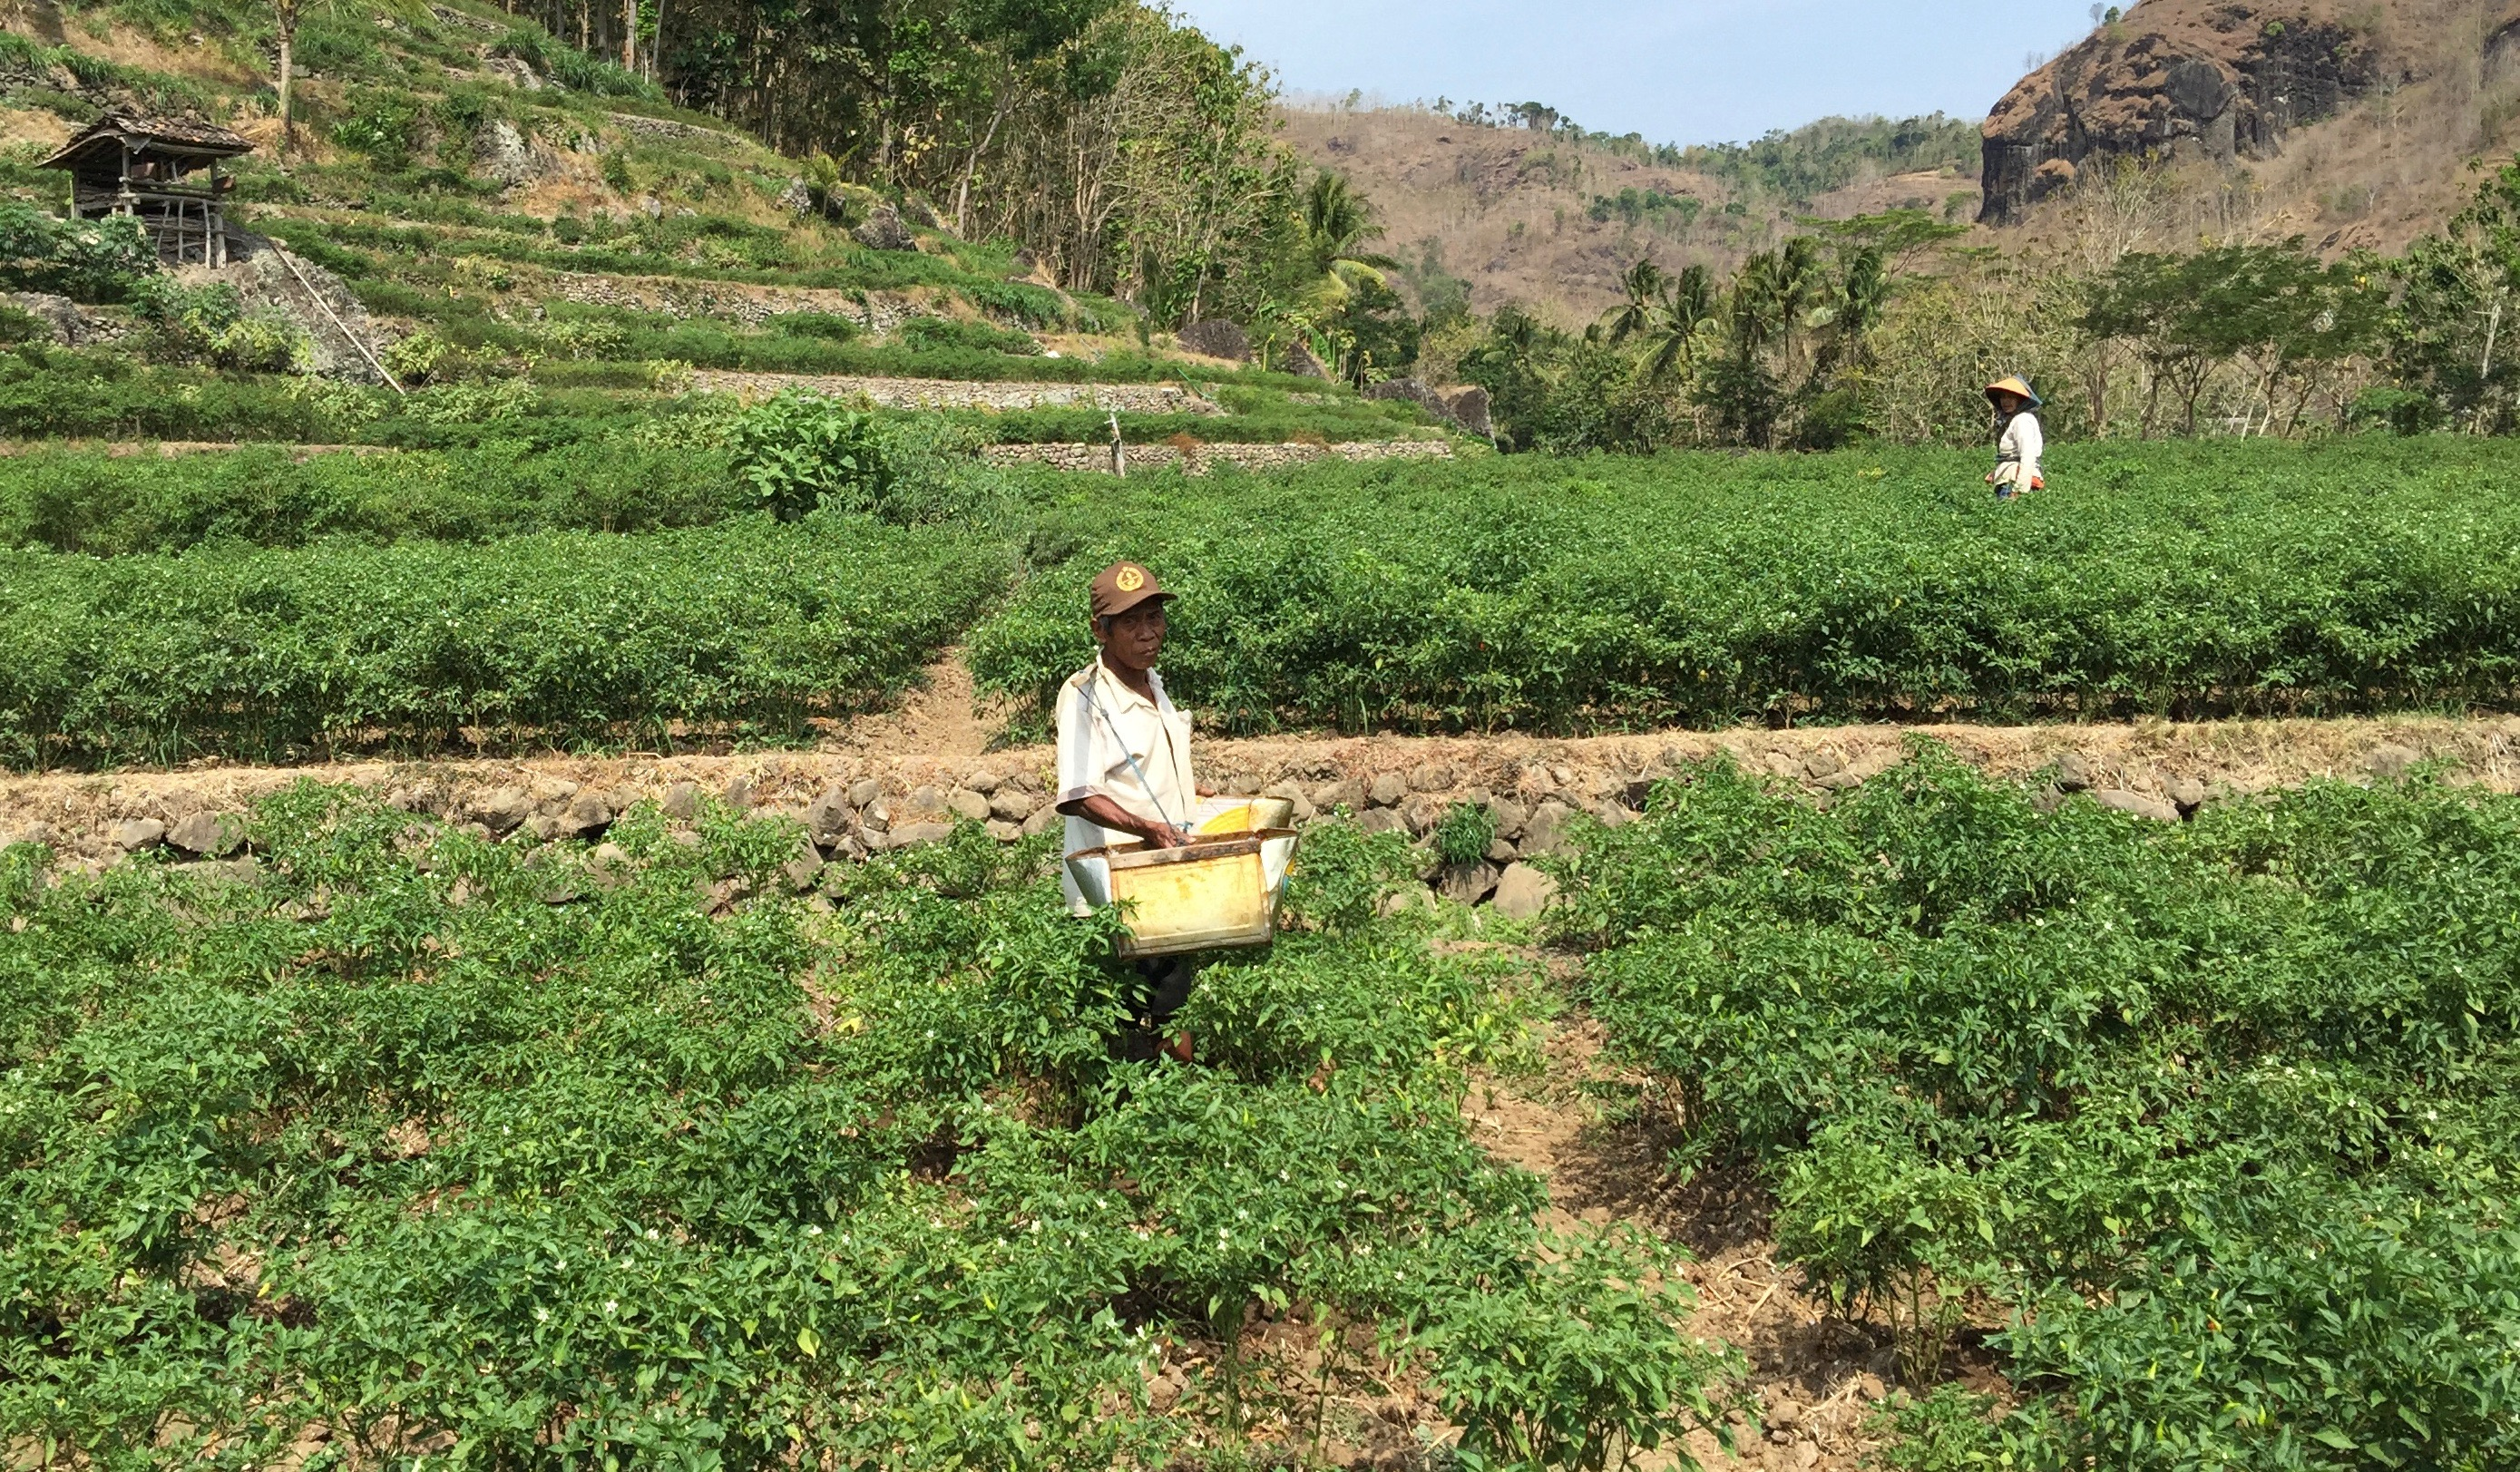 Ngadimin in his field in Ketung Miri village in Indonesia's Special Region of Yogyakarta in October 2015. Normally the field would be flooded, but his rice harvest failed due to drought so he planted tobacco and chilis.